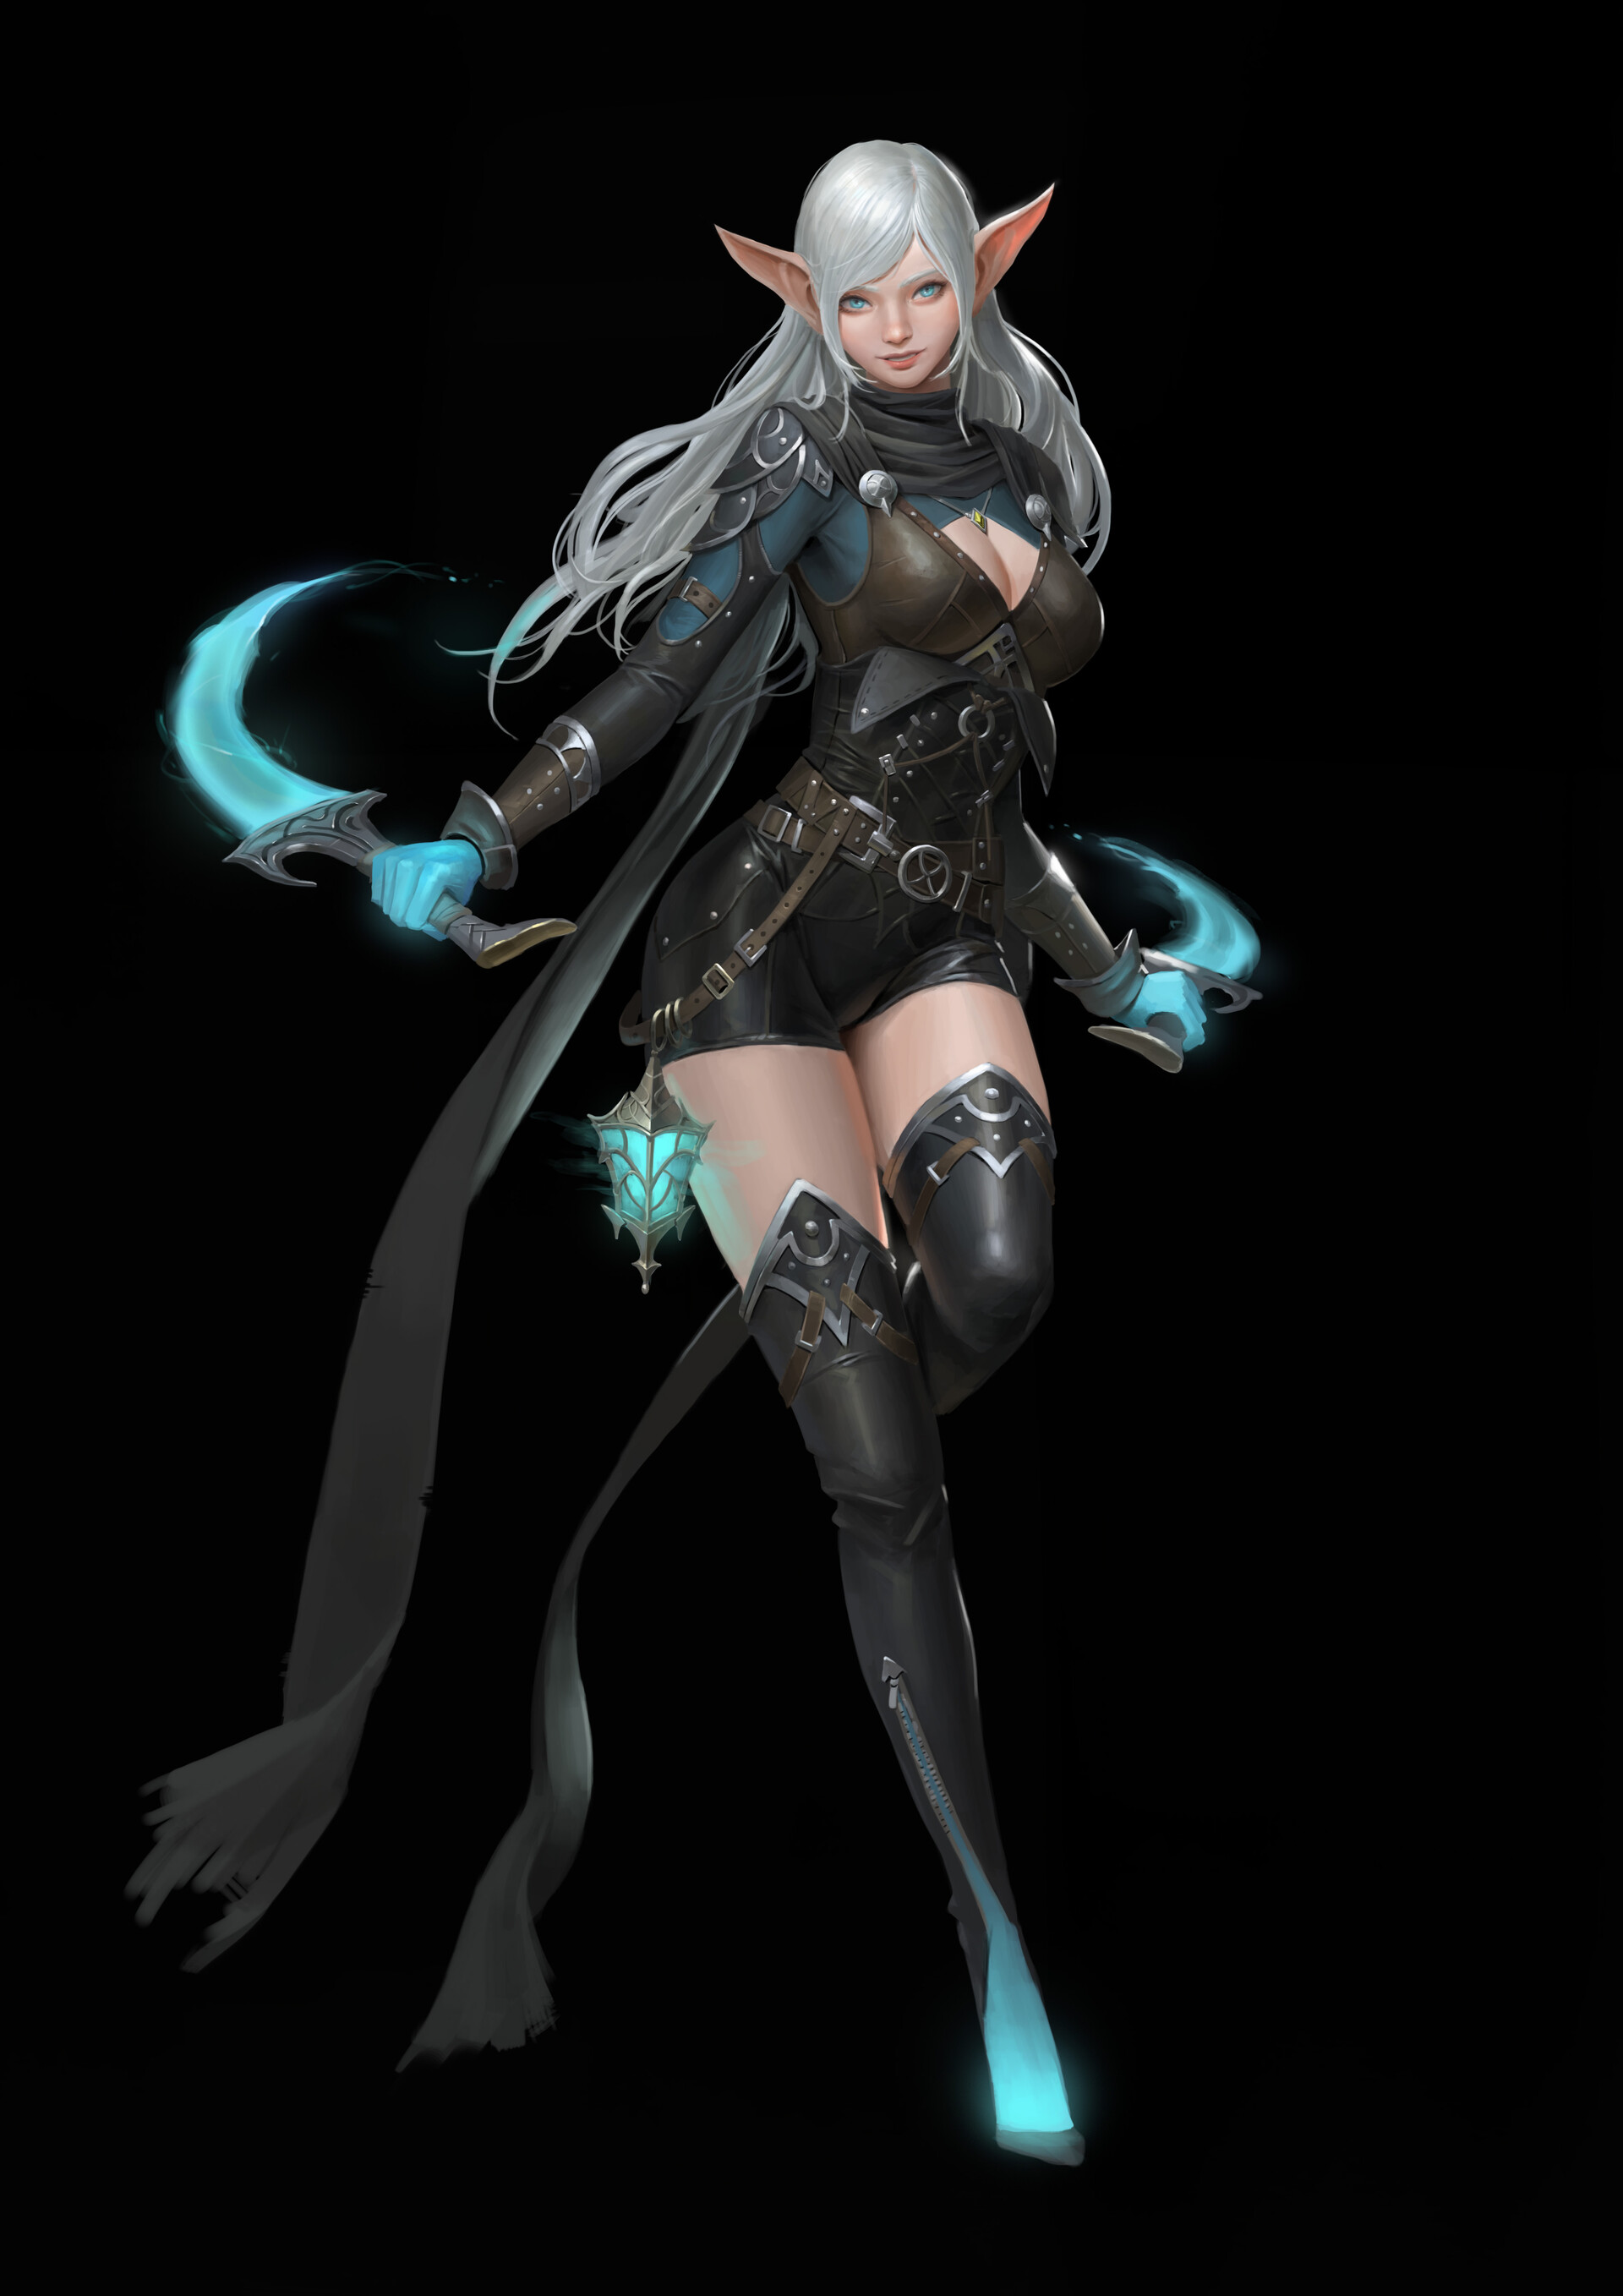 General 1920x2716 Hyunjoon Kim drawing women elves silver hair long hair armor Rogue dagger glowing weapon thigh-highs simple background black background blue eyes